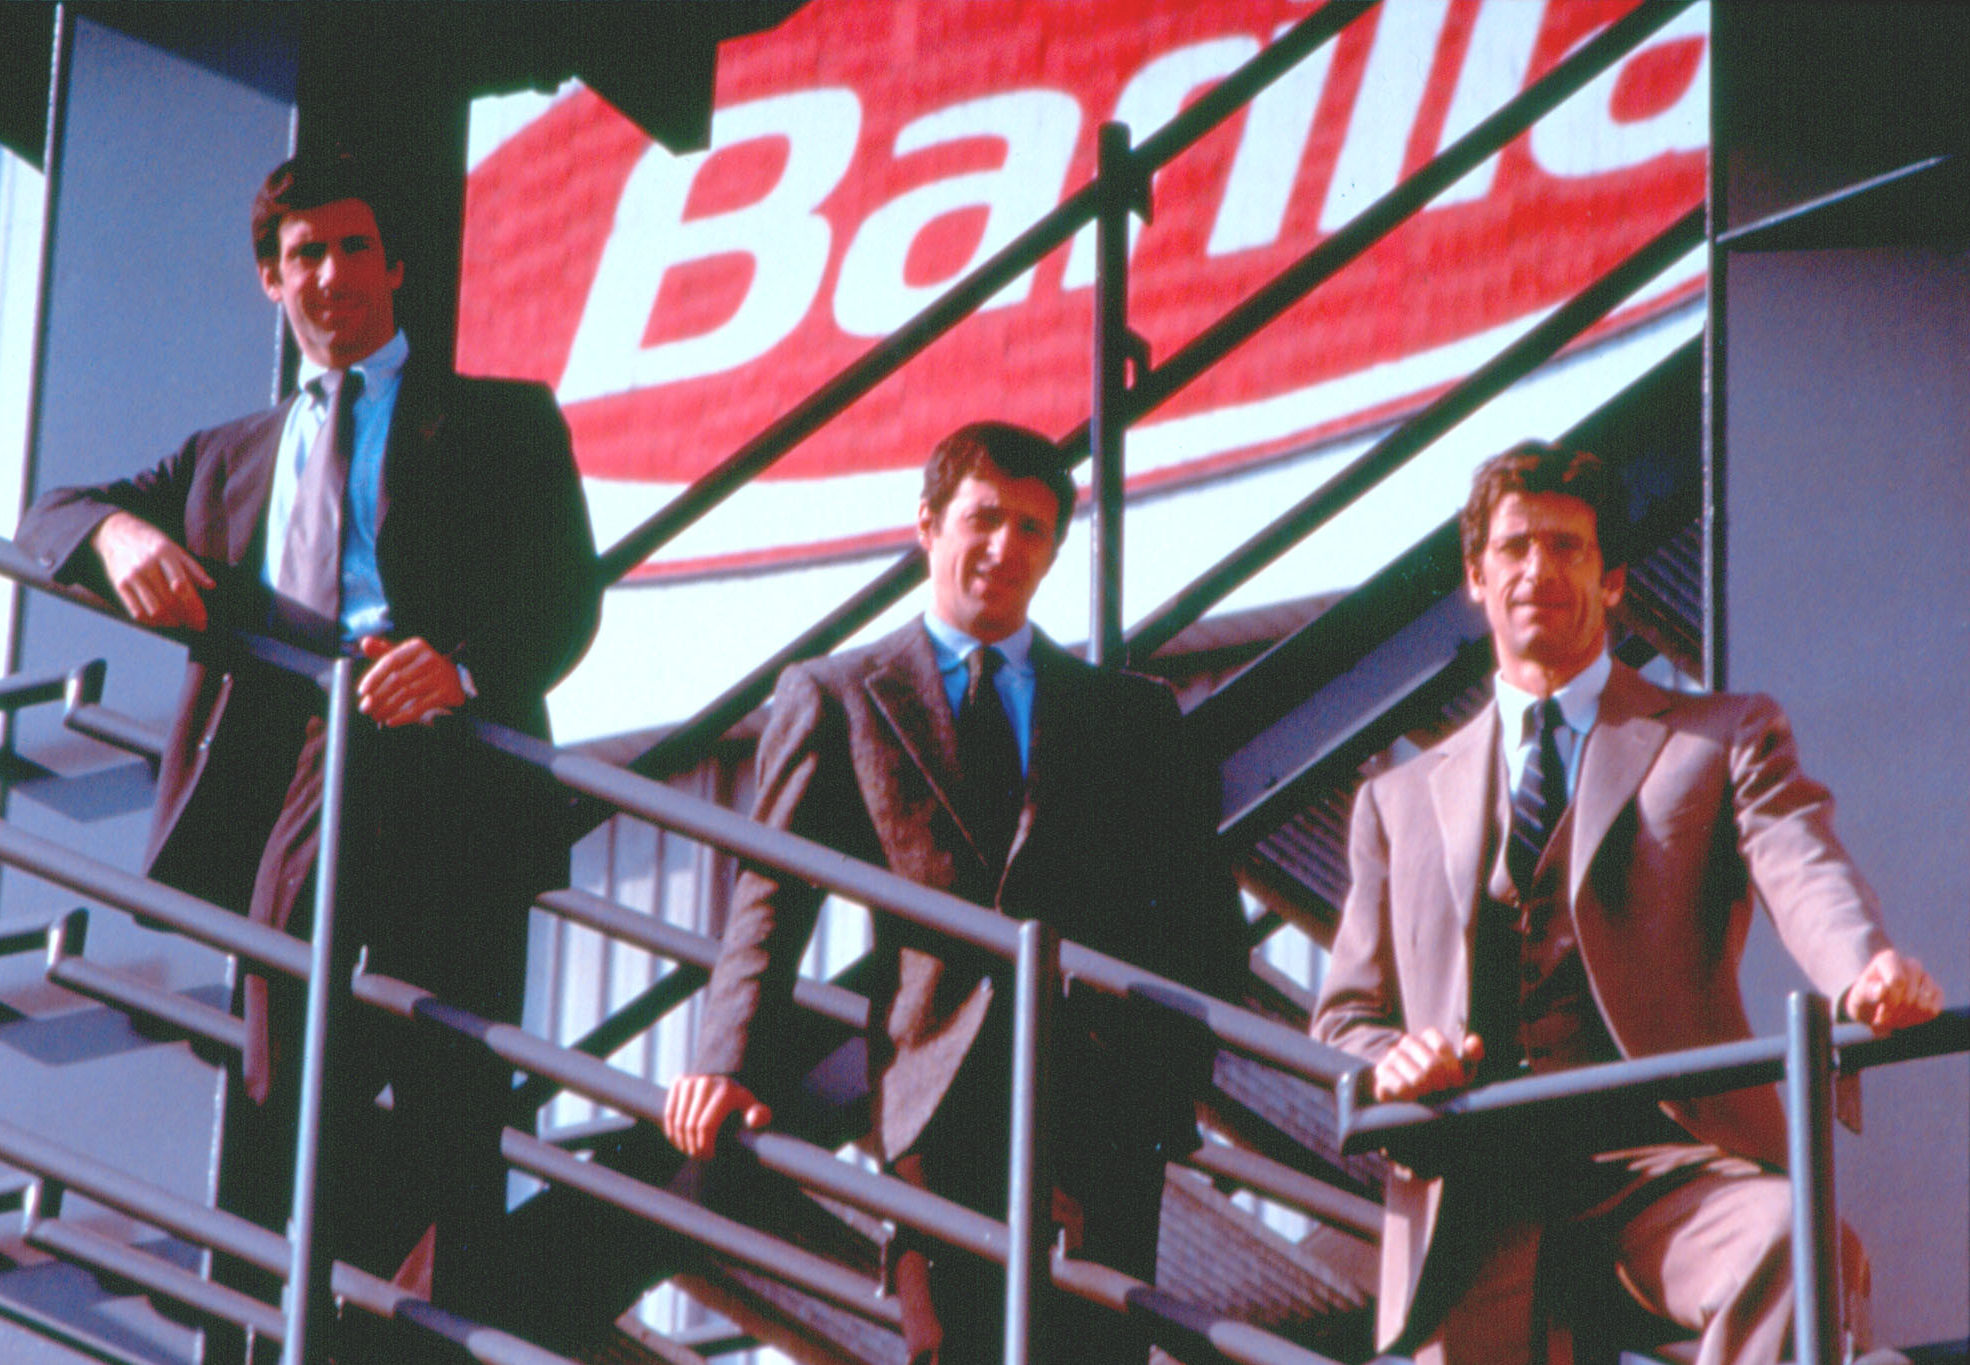 1993 - Guido, Luca and Paolo Barilla take Pietro's place at the leadership of the Company